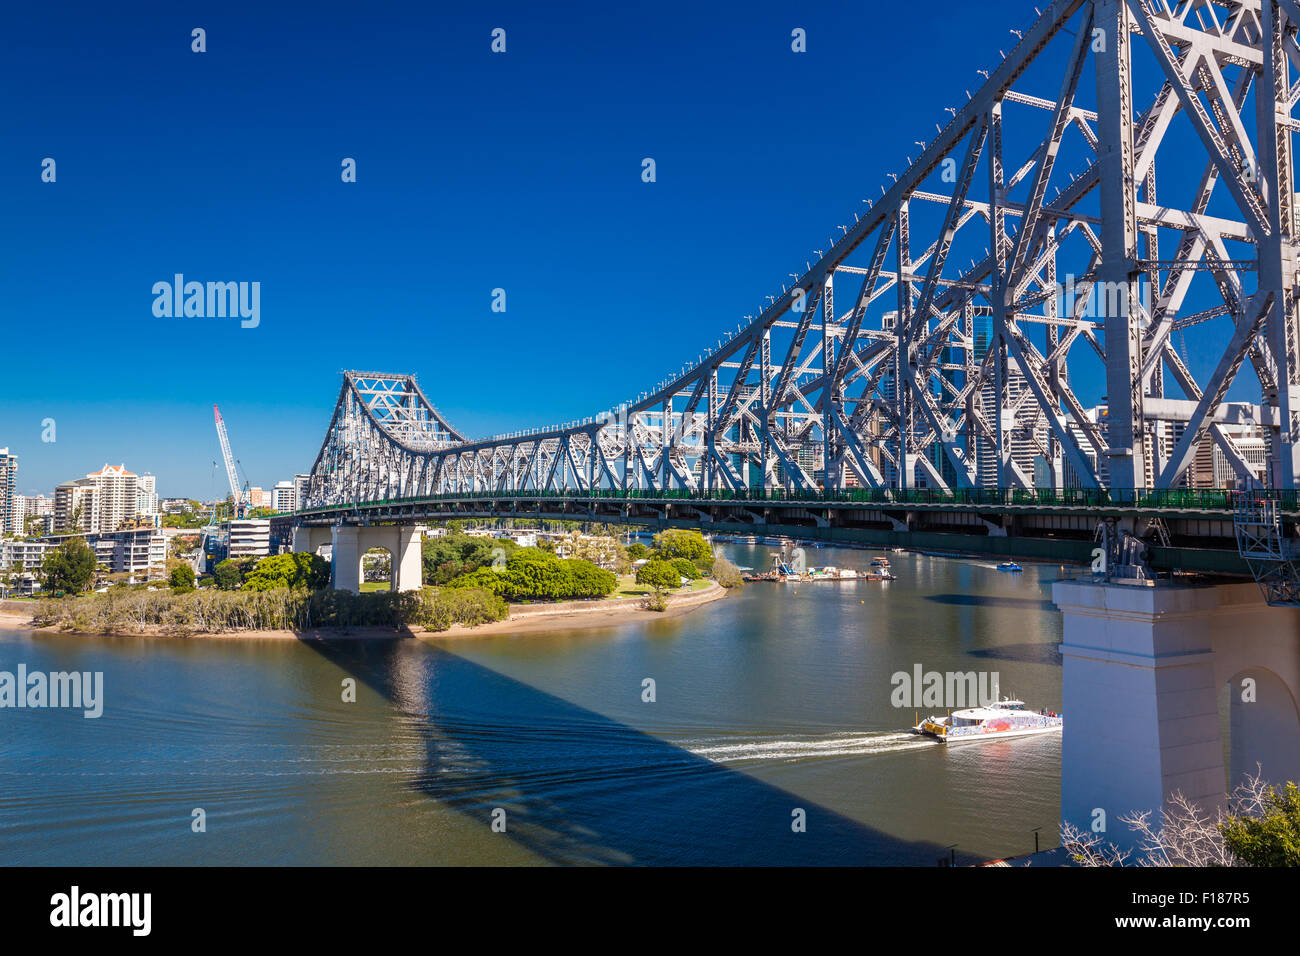 BRISBANE, AUS - MAY 12 2015: Brisbane Skyline with Story Bridge and the river. It is Australias third largest city, - Stock Image